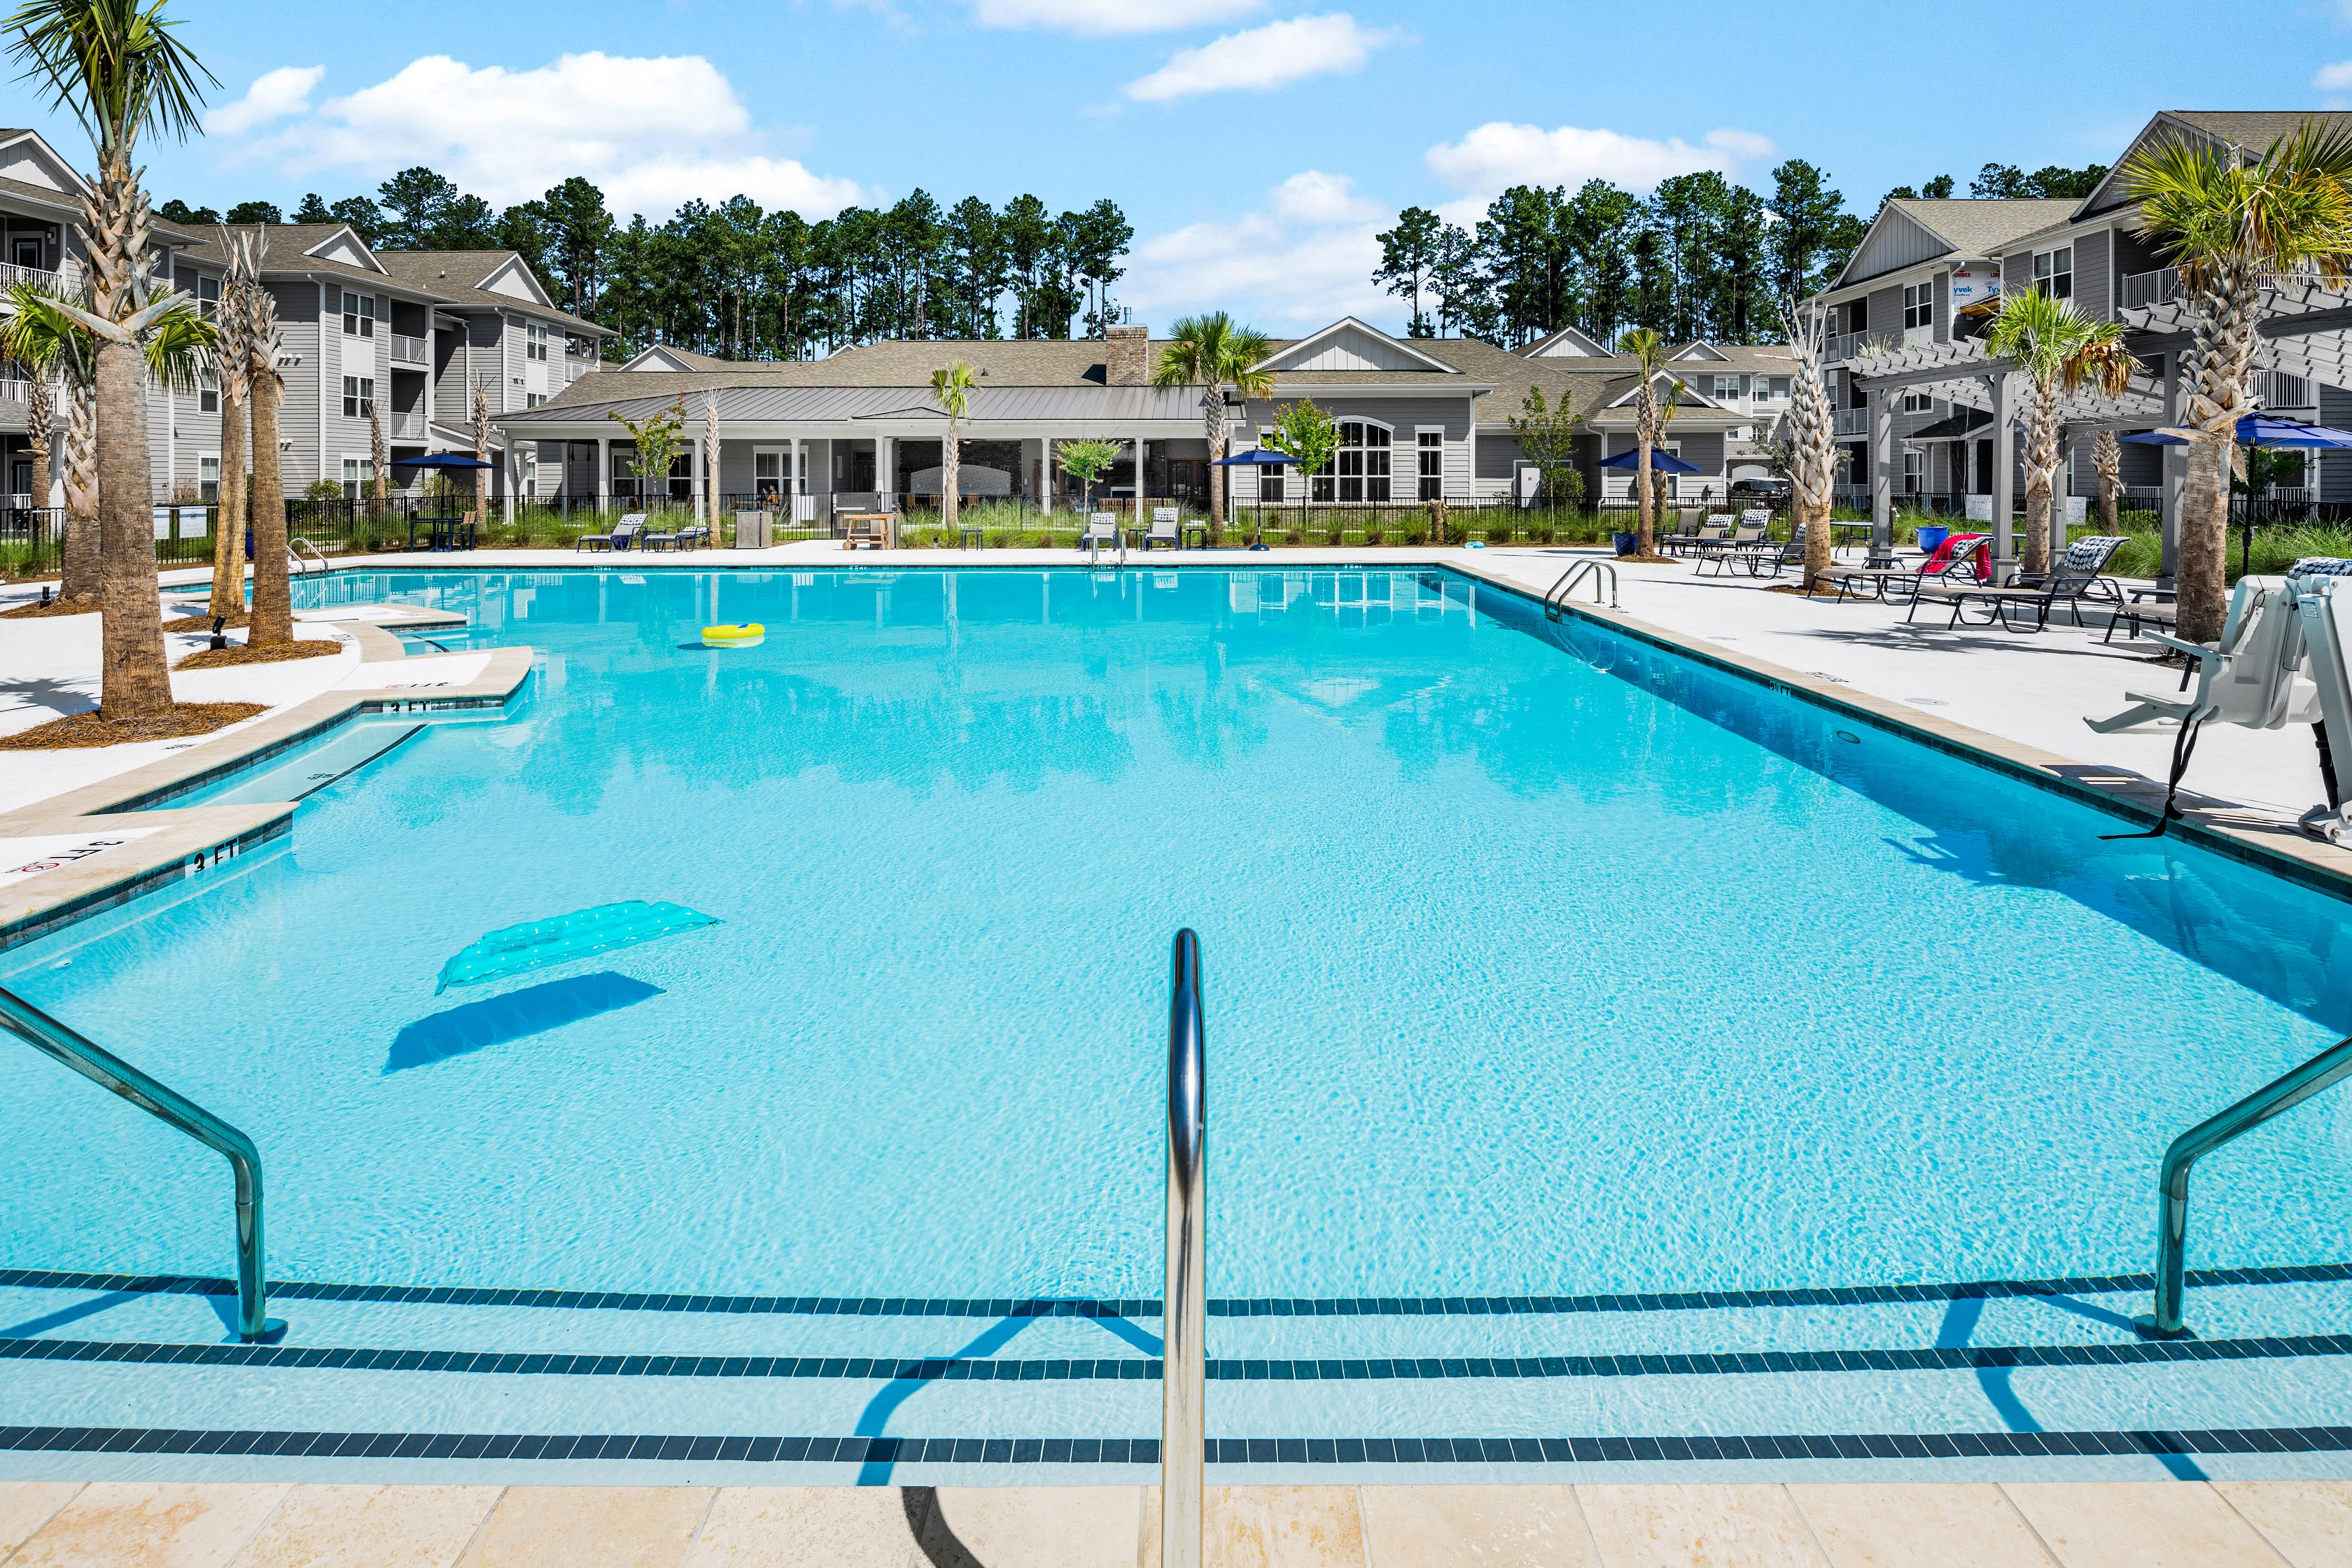 Outdoor grilling area with seating and places to cook poolside at The Isaac in Summerville, South Carolina